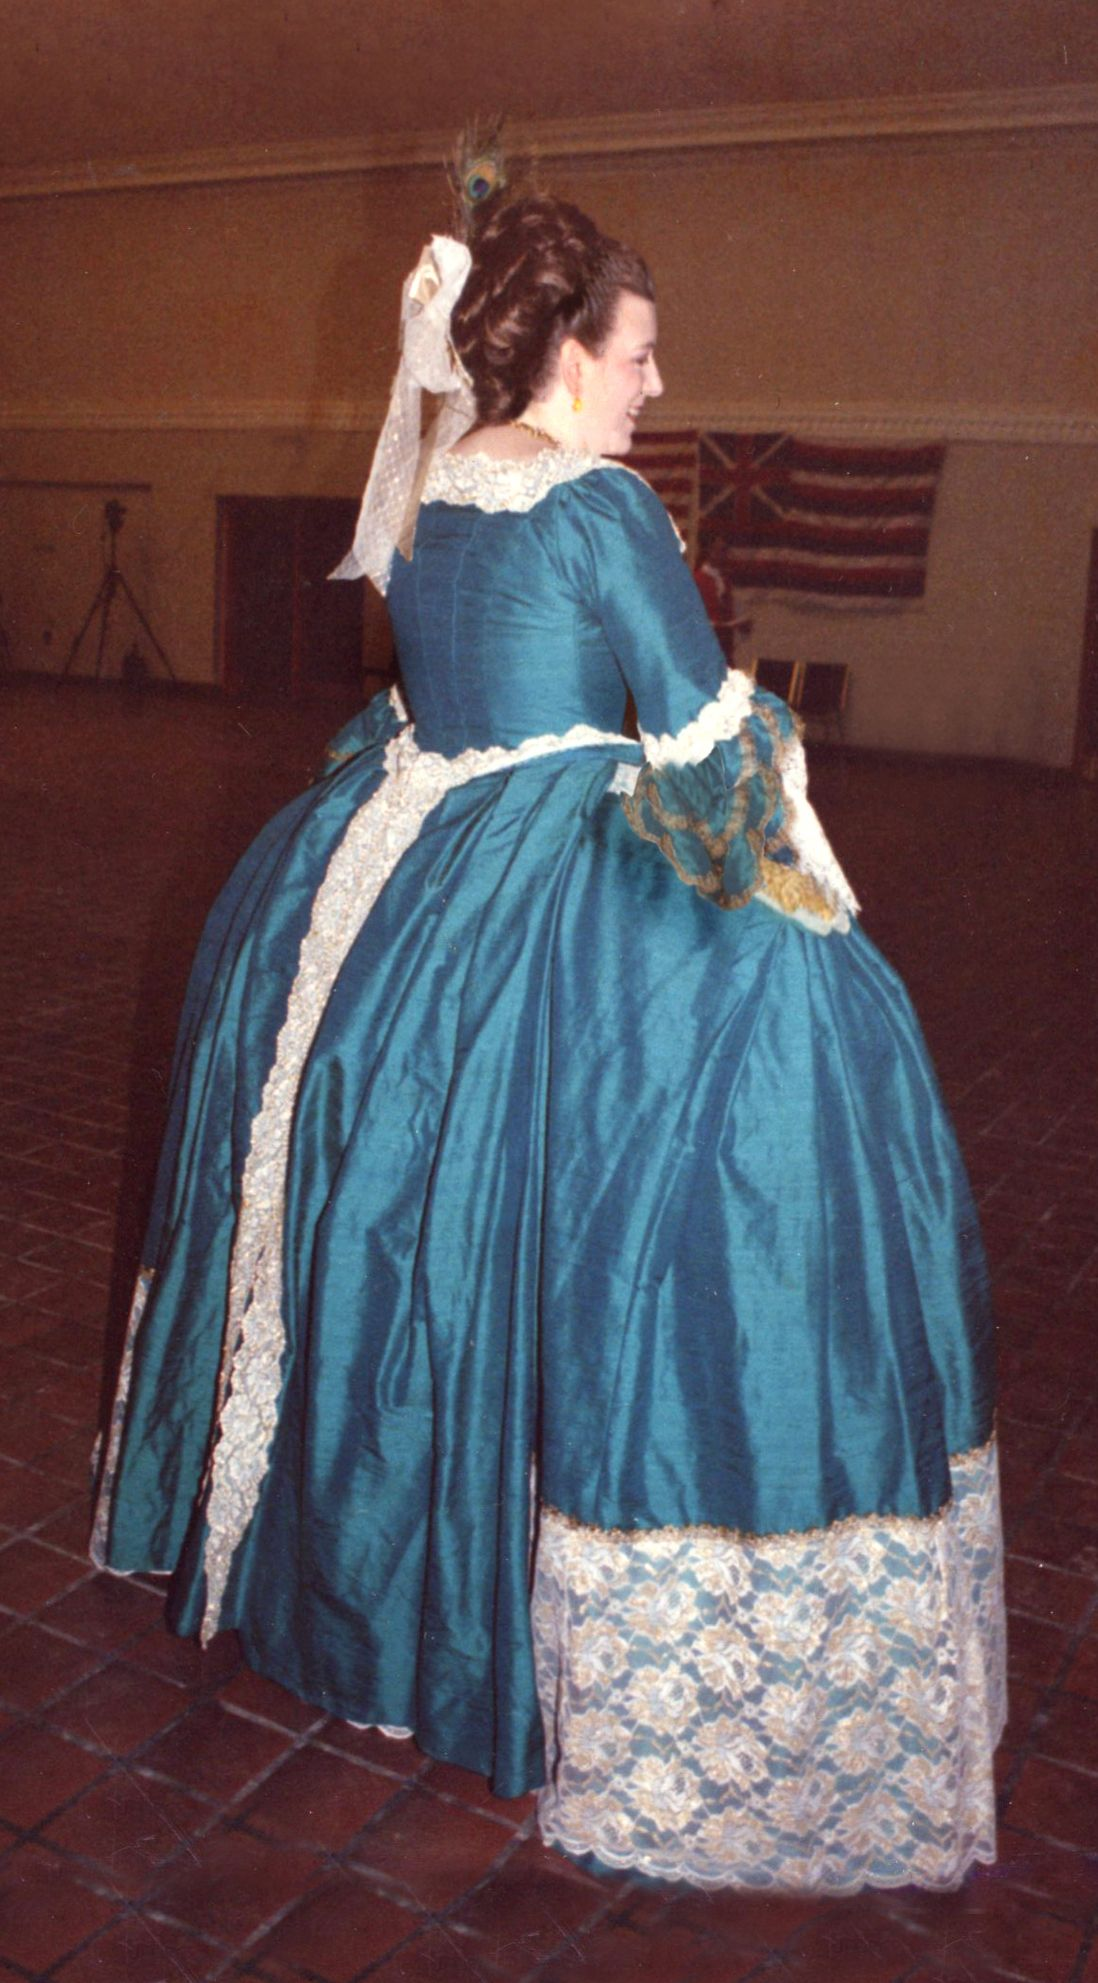 The 'mantua' has the same construction and back 'tails'-somewhat deflated during an evening of 18th century dancing. Just barely visible are the petticoat side 'rosettes' at the terminus of the pocket slits. Years ago, Janet Arnold created a gridded pattern of this outfit; I'm lucky enough to have a copy of it, which was the basis of this ensemble.